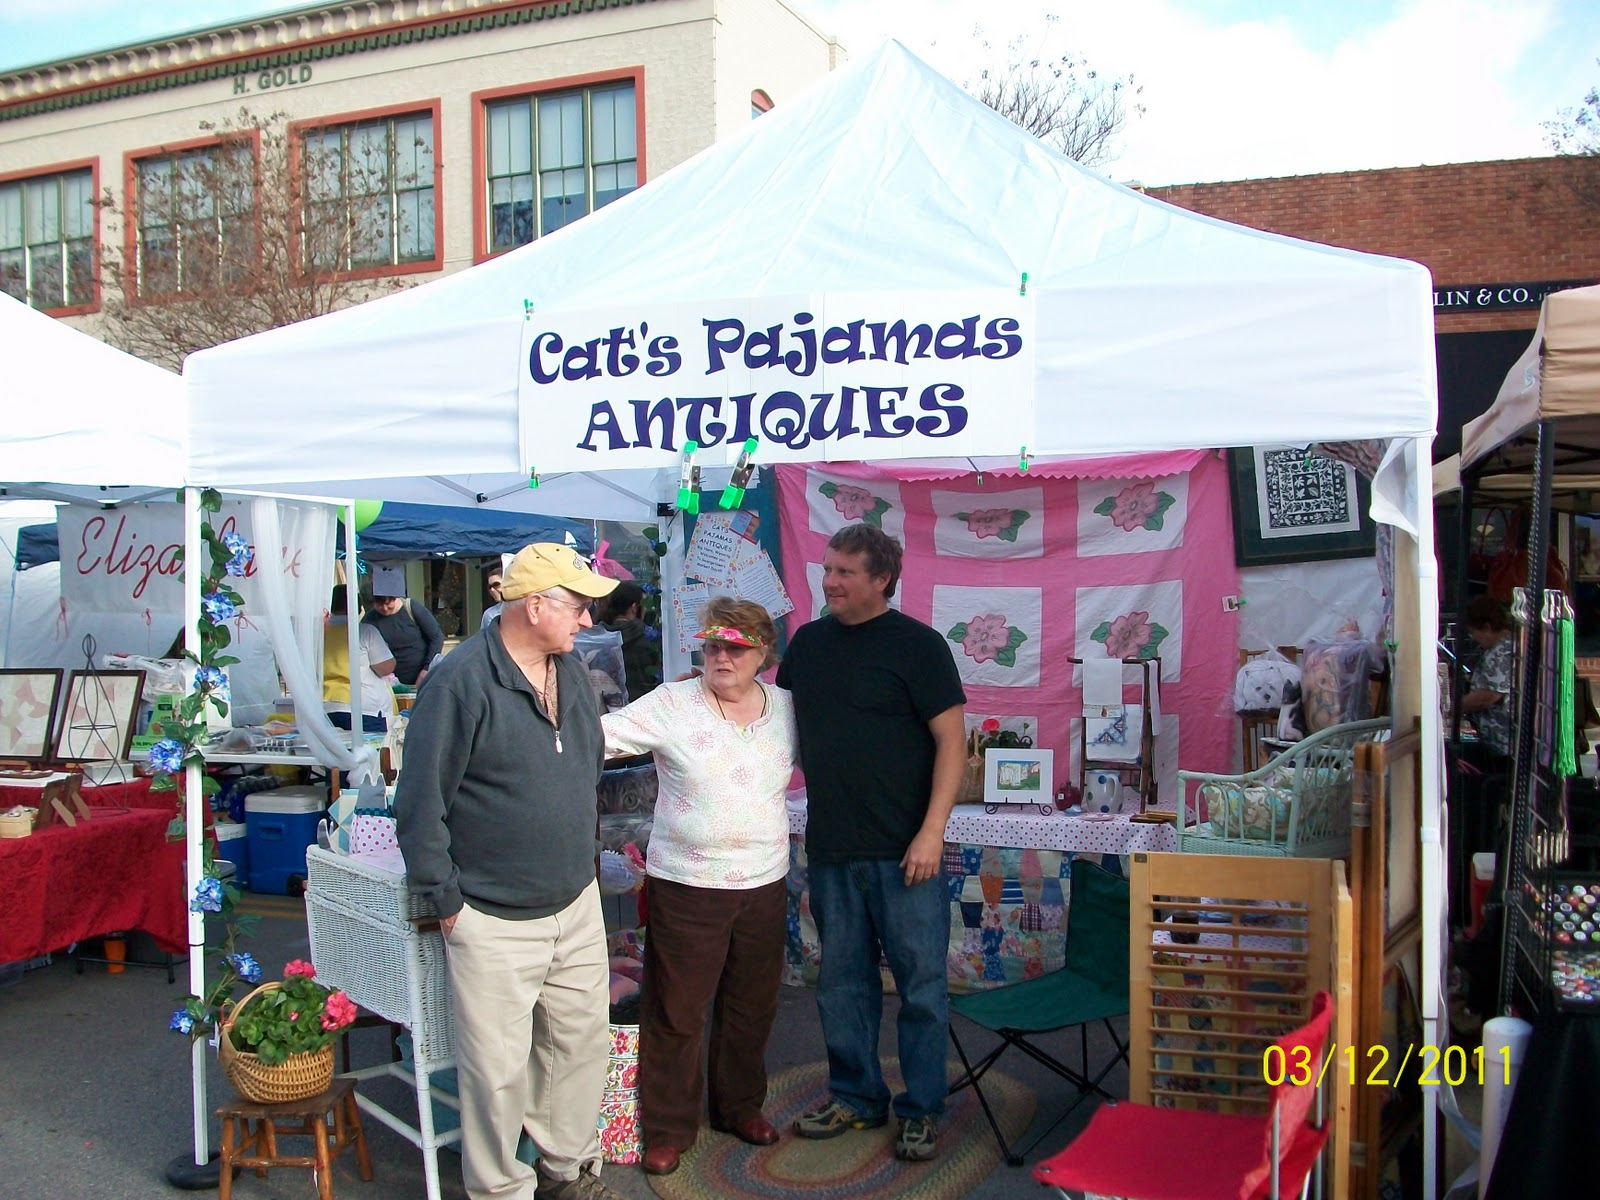 Cat's Pajamas Antiques: MARKET DAYS IN GEORGETOWN